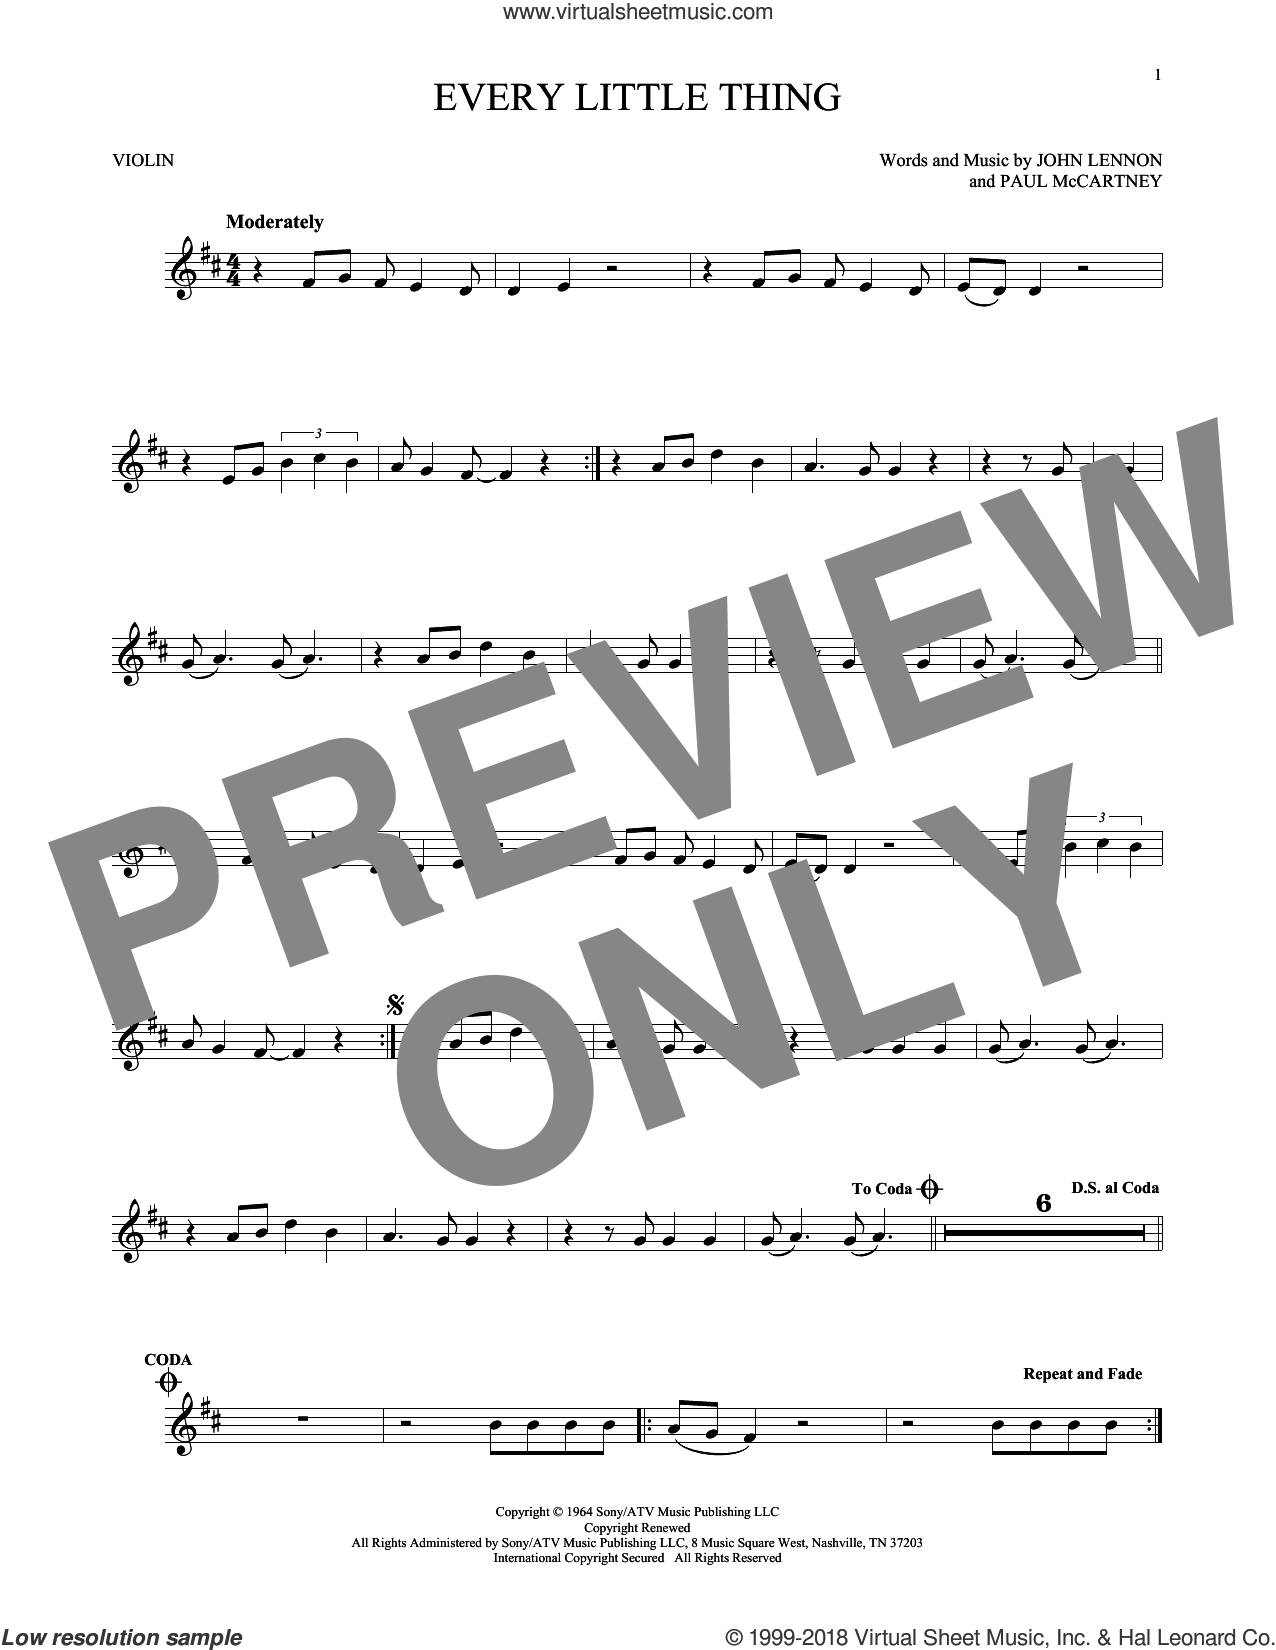 Every Little Thing sheet music for violin solo by The Beatles, John Lennon and Paul McCartney. Score Image Preview.